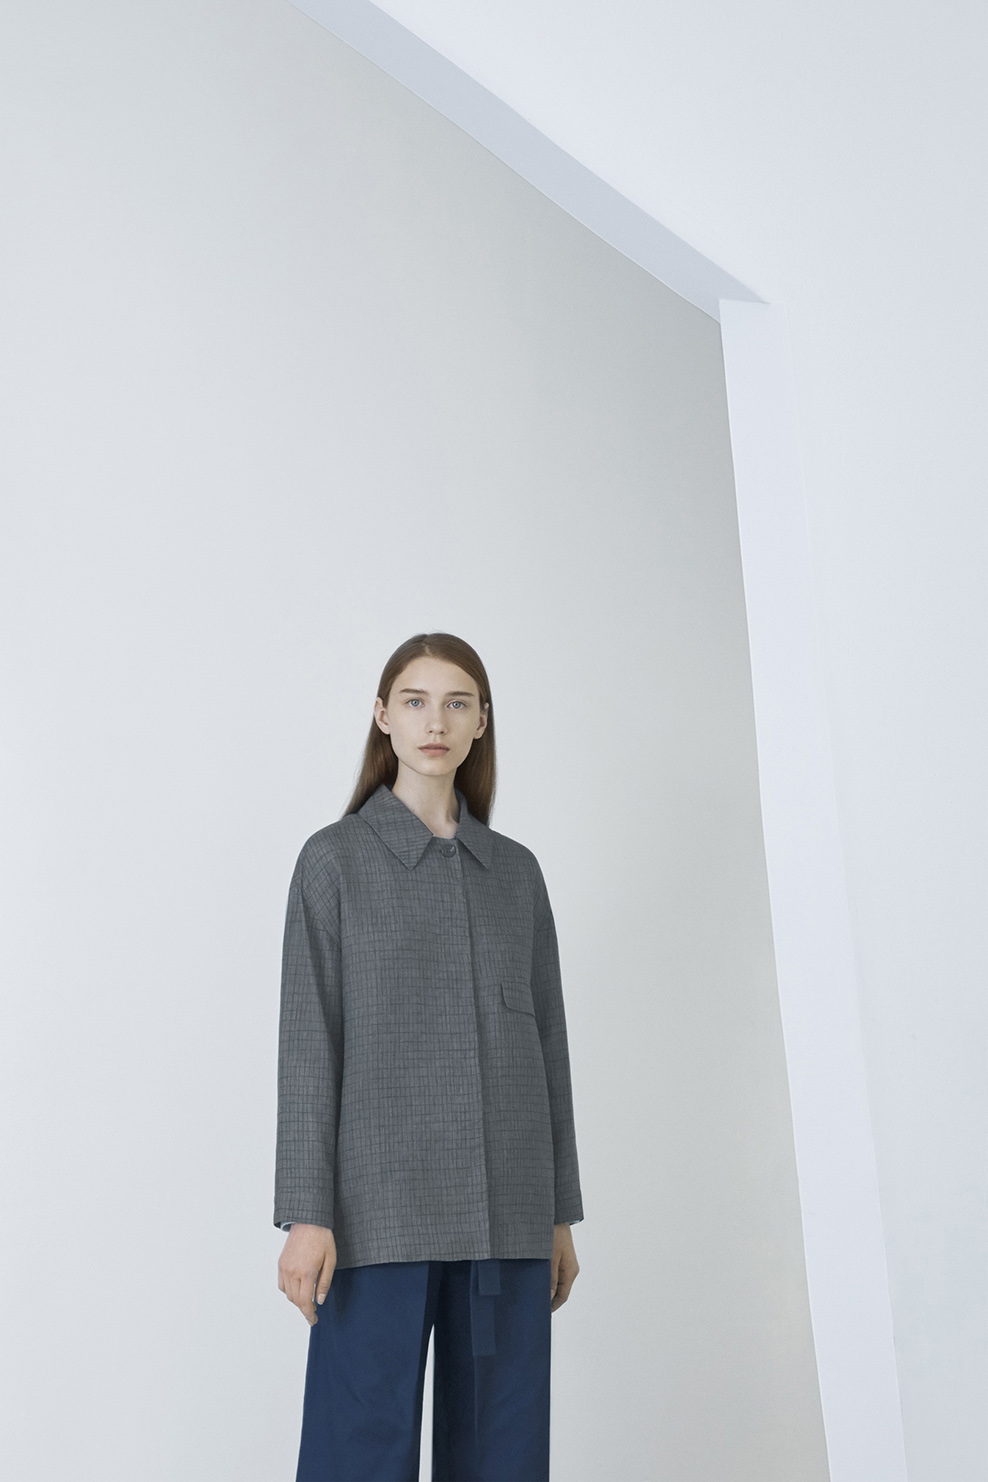 cos-agnes-martin-guggenheim-fw2016-lookbook-mens-womens-11